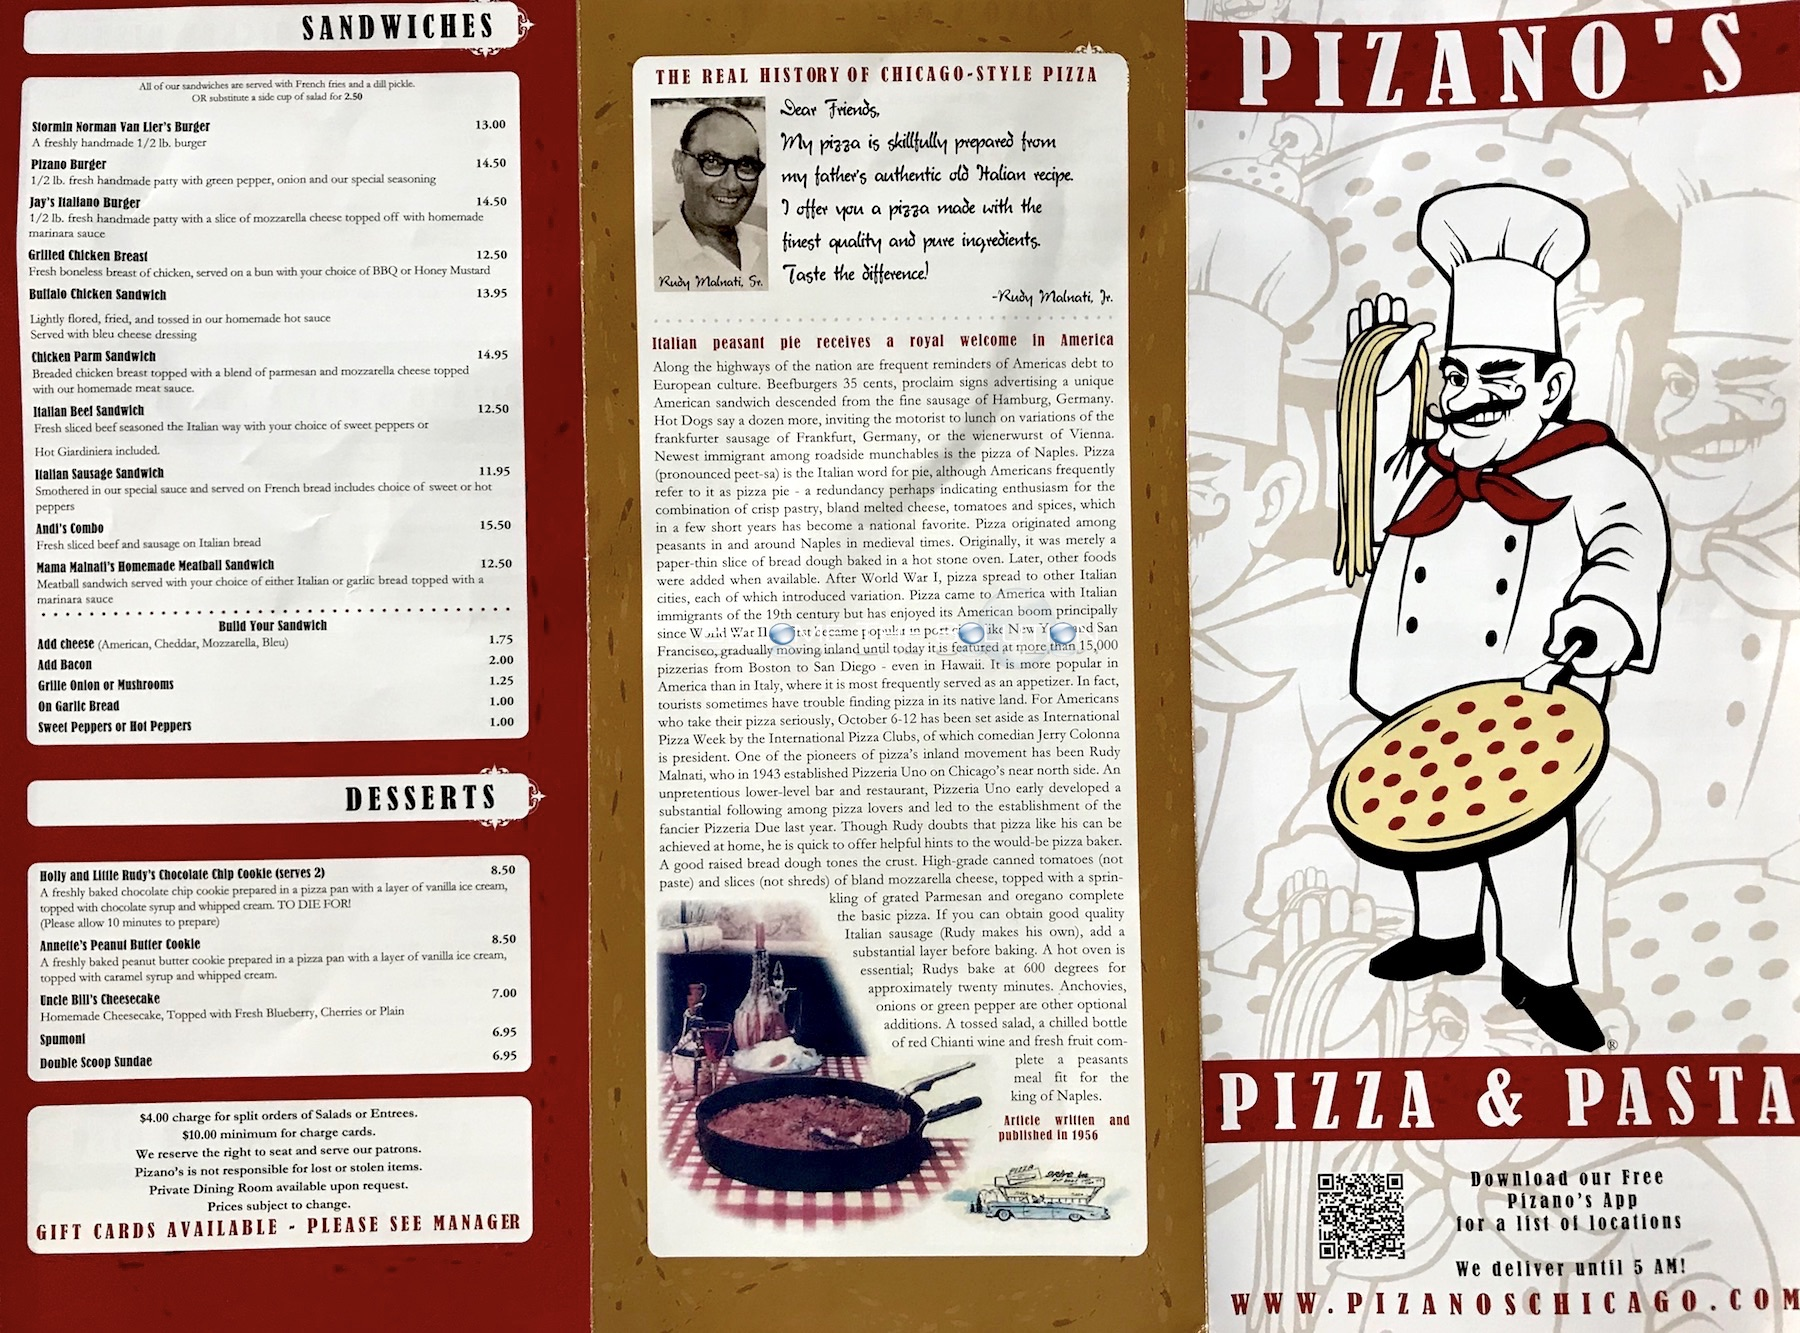 Pizano's pizza chicago menu 2